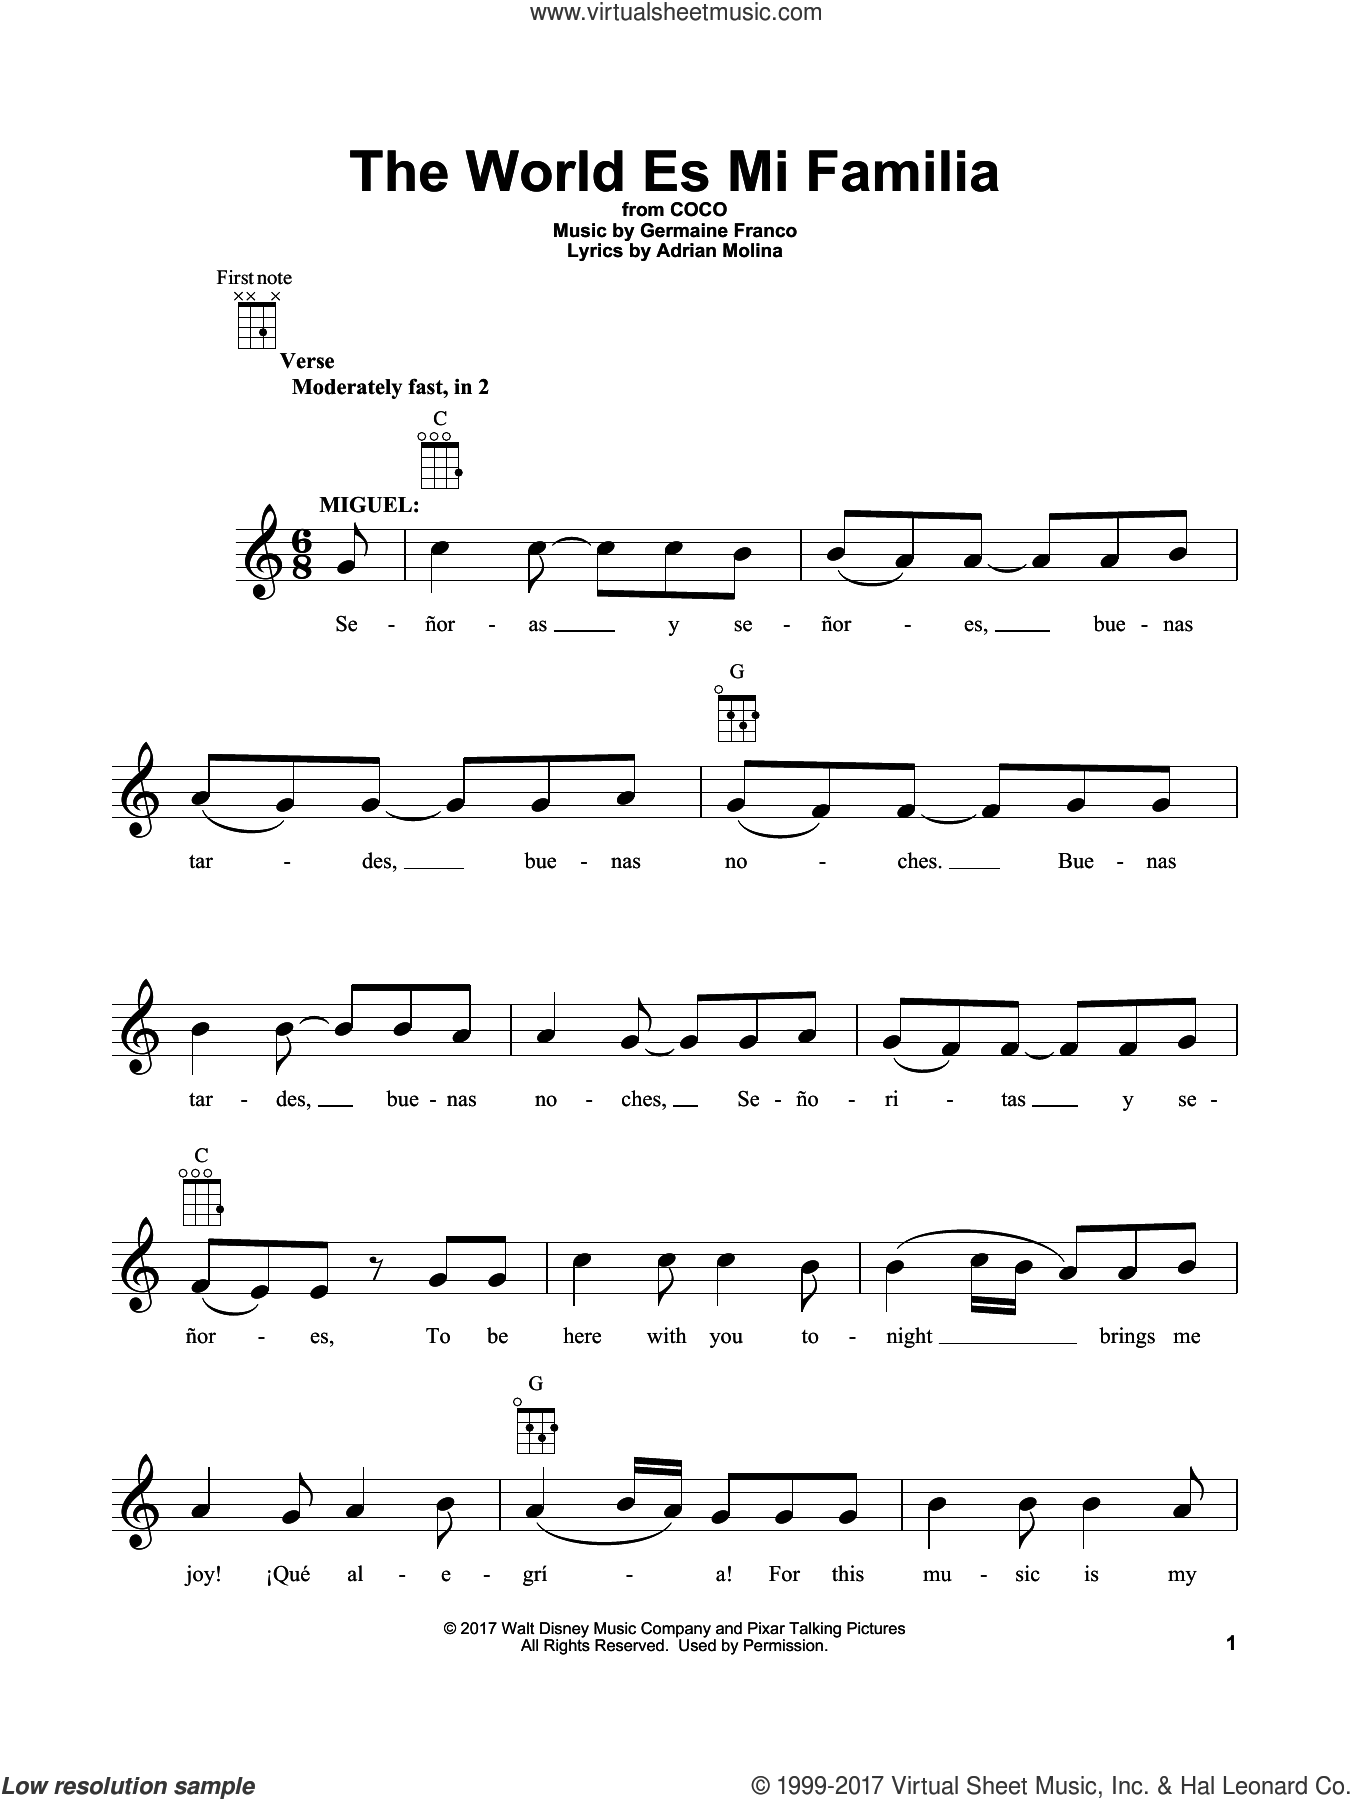 The World Es Mi Familia sheet music for ukulele by Adrian Molina, Coco (Movie) and Germaine Franco, intermediate skill level